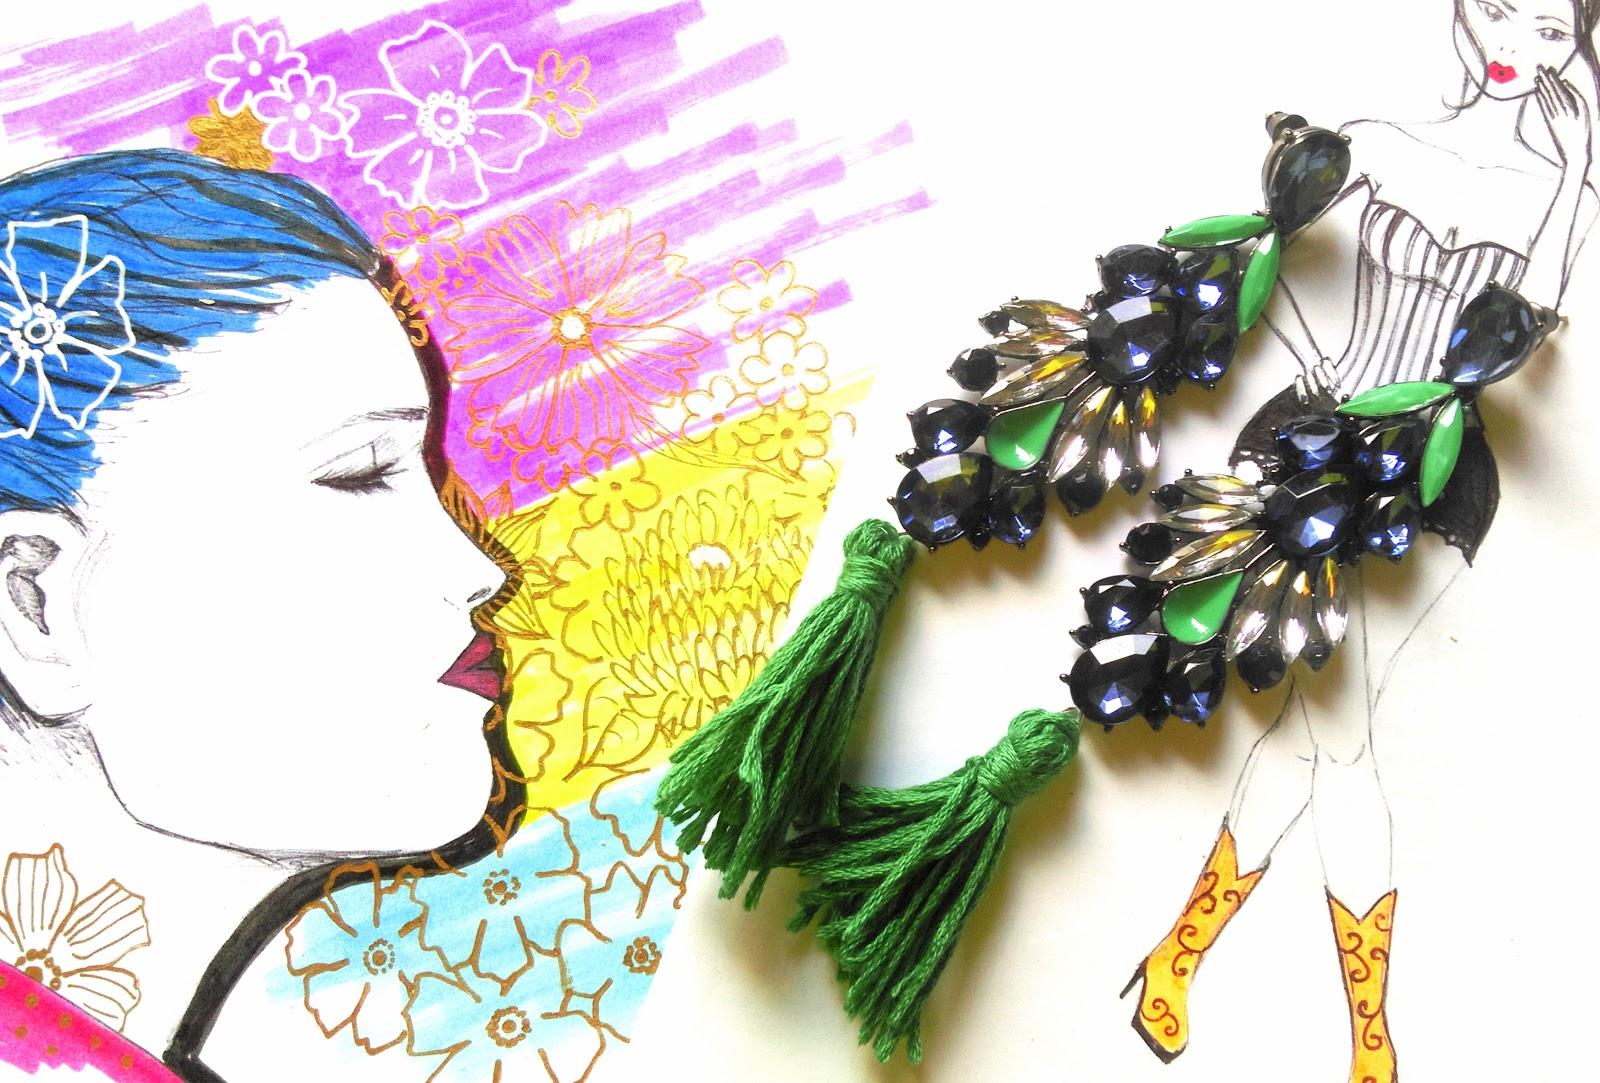 http://pridenstyle.blogspot.co.uk/2015/02/quick-diy-revamping-earings.html